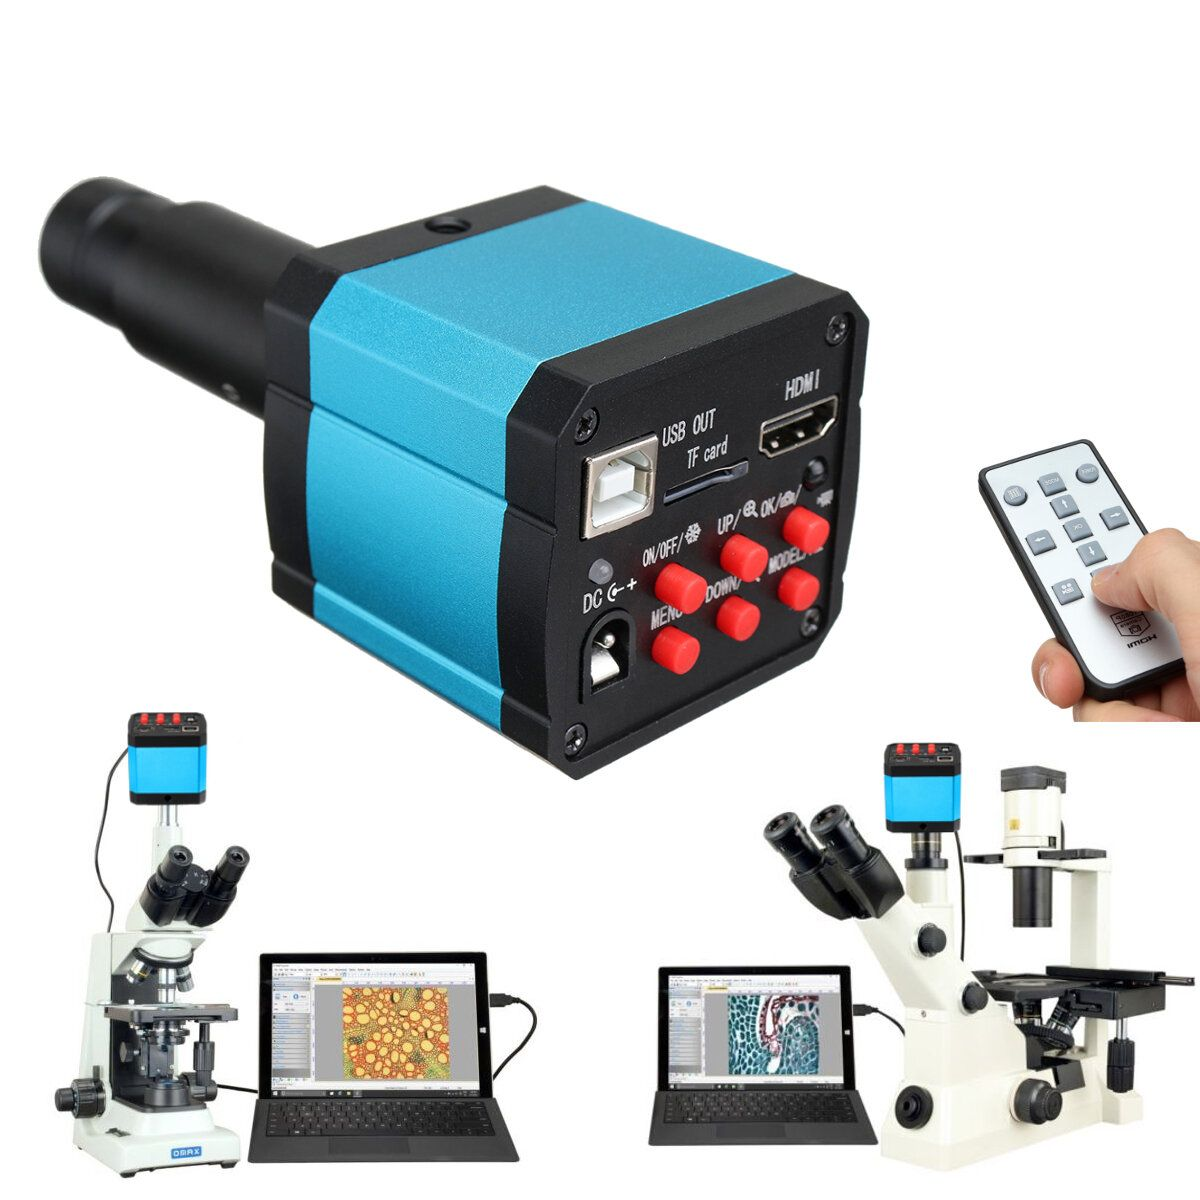 HAYEAR 16MP 1080P 60FPS USB C mount Digital Industry Video Microscope Camera with HDMI Cable